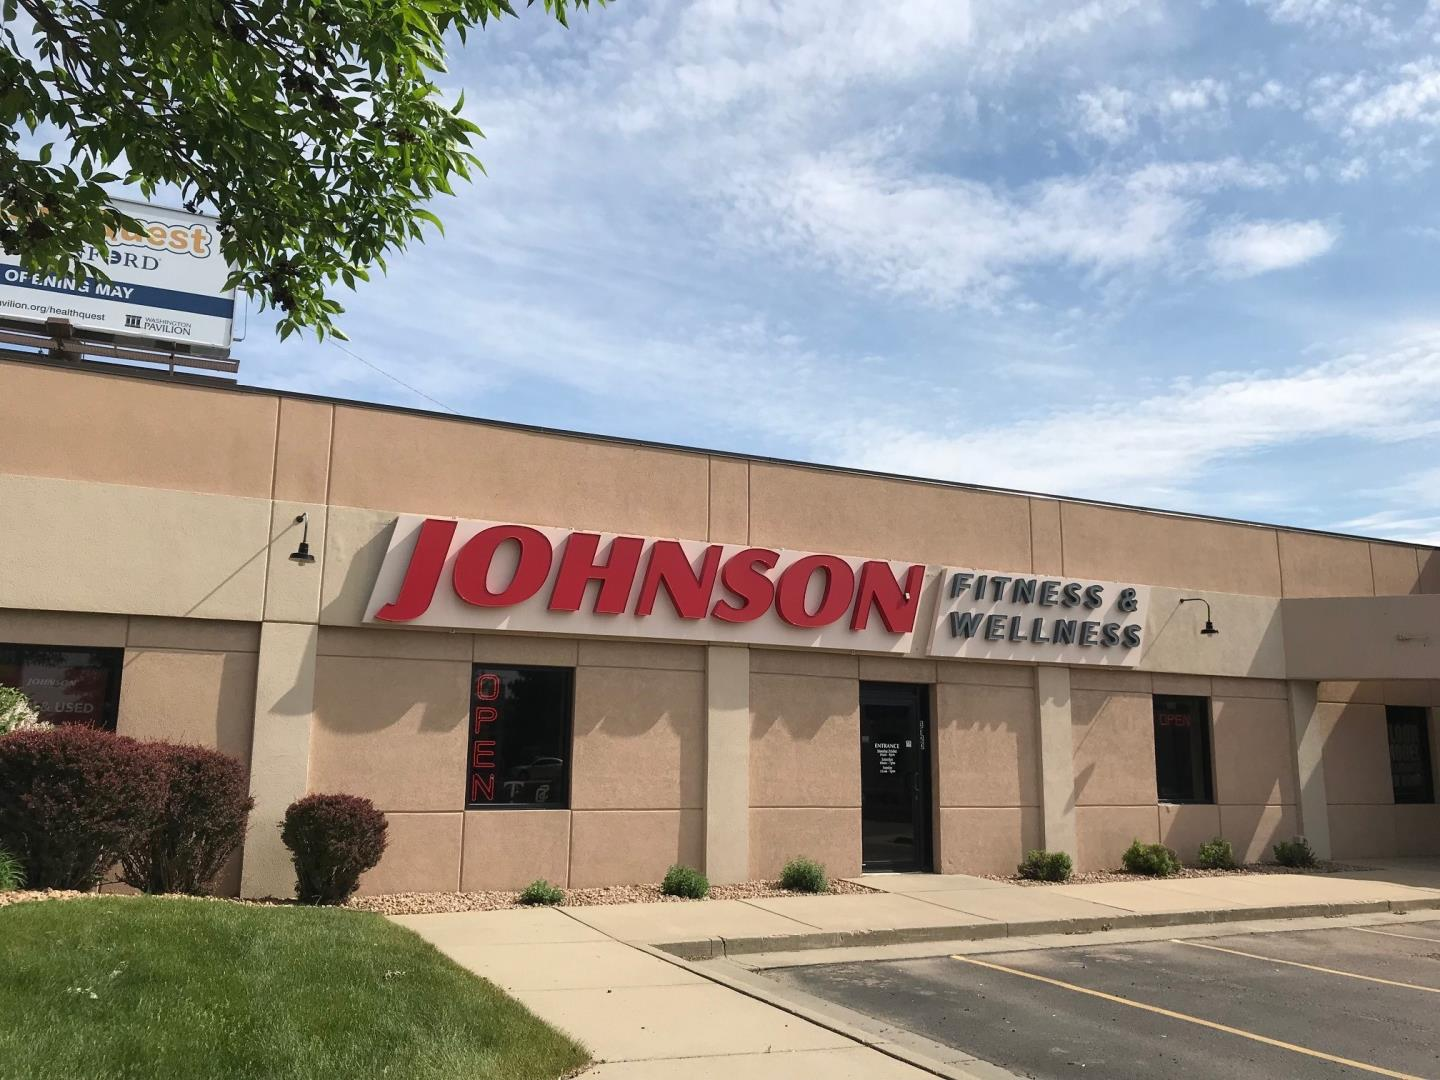 Johnson Fitness & Wellness - Sioux Falls, SD